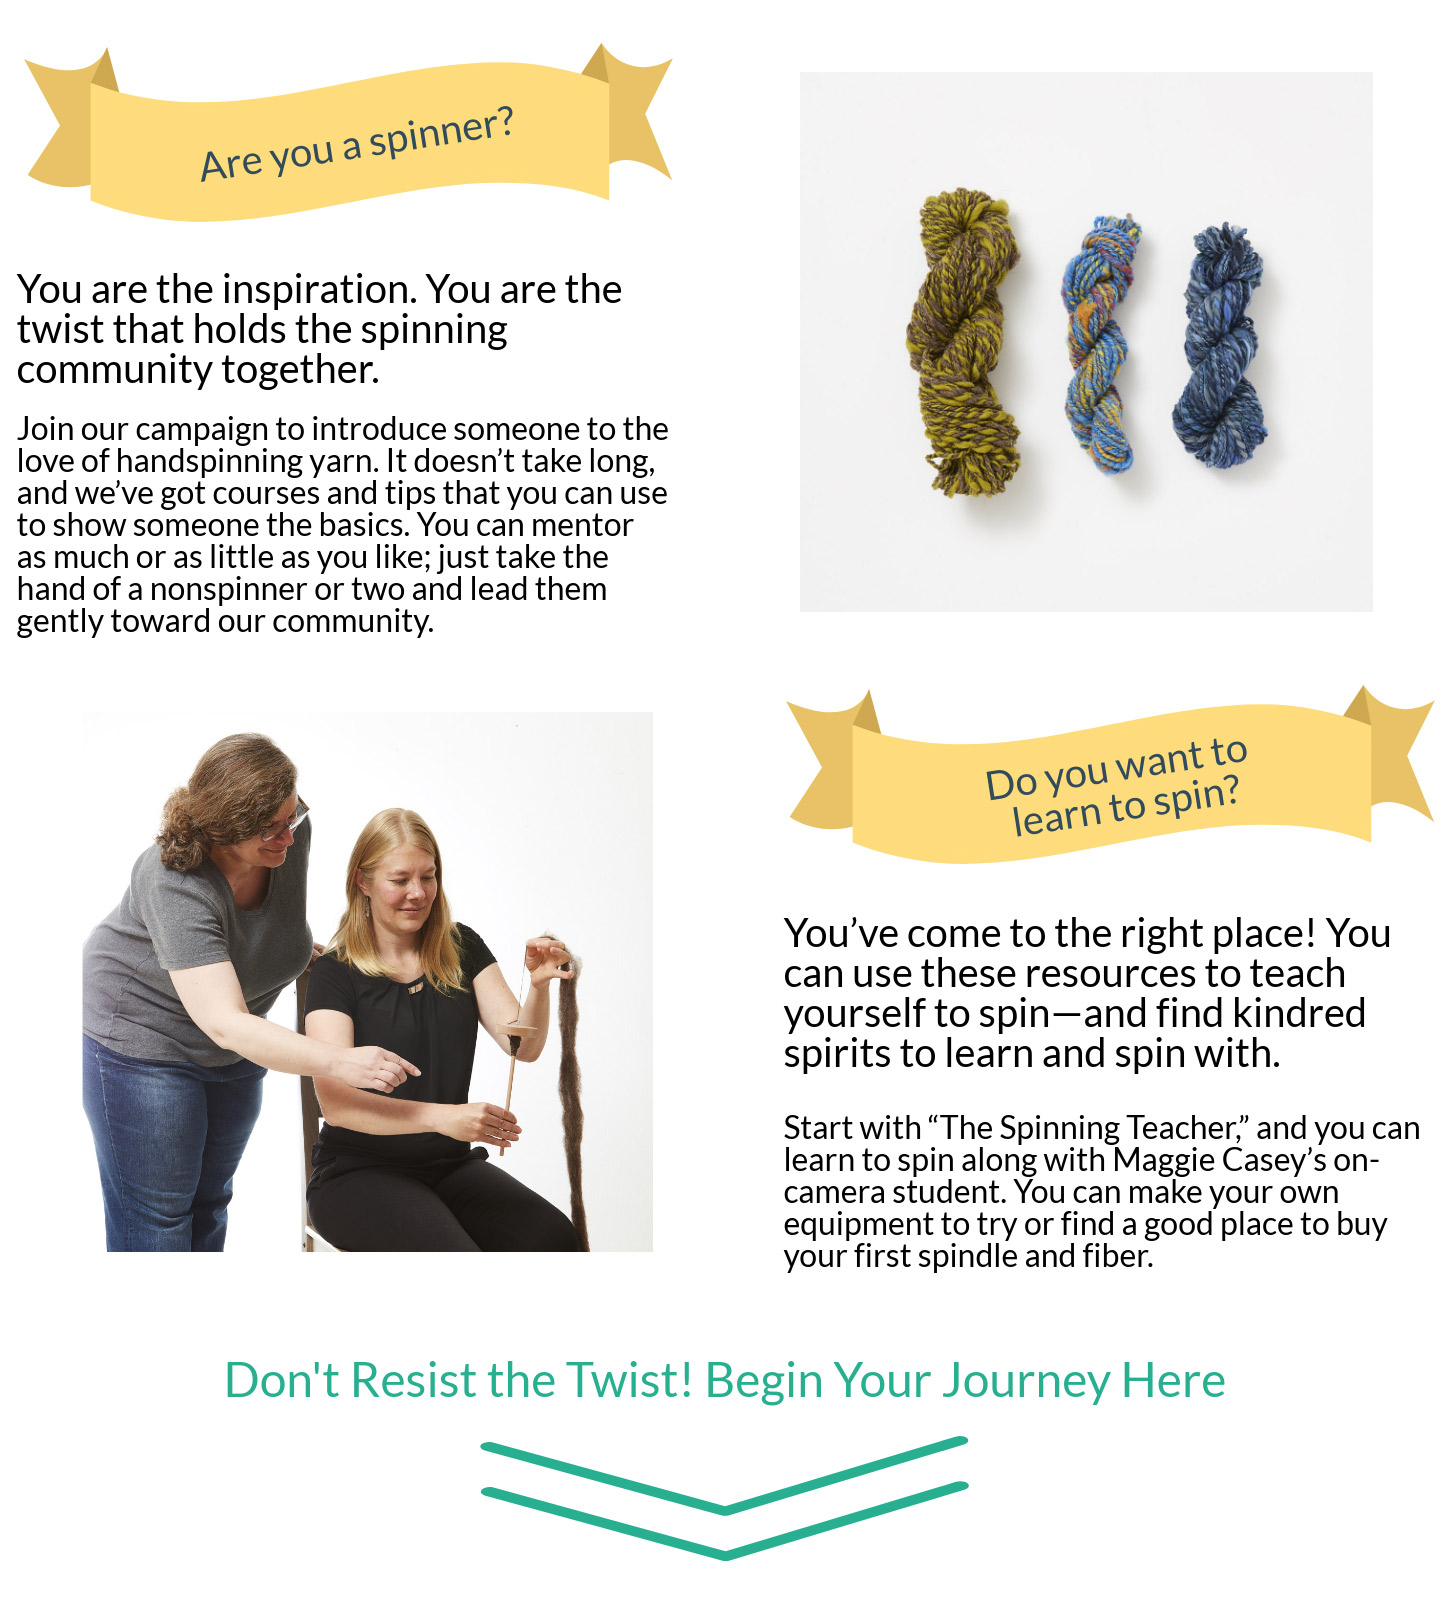 Are you a spinner? Join our campaign to introduce someone to the love of handspinning yarn. OR Do you want to learn to spin? You've come to the right place! You can use these resources to teach yourself to spin—and find kindred spirits to learn and spin with.